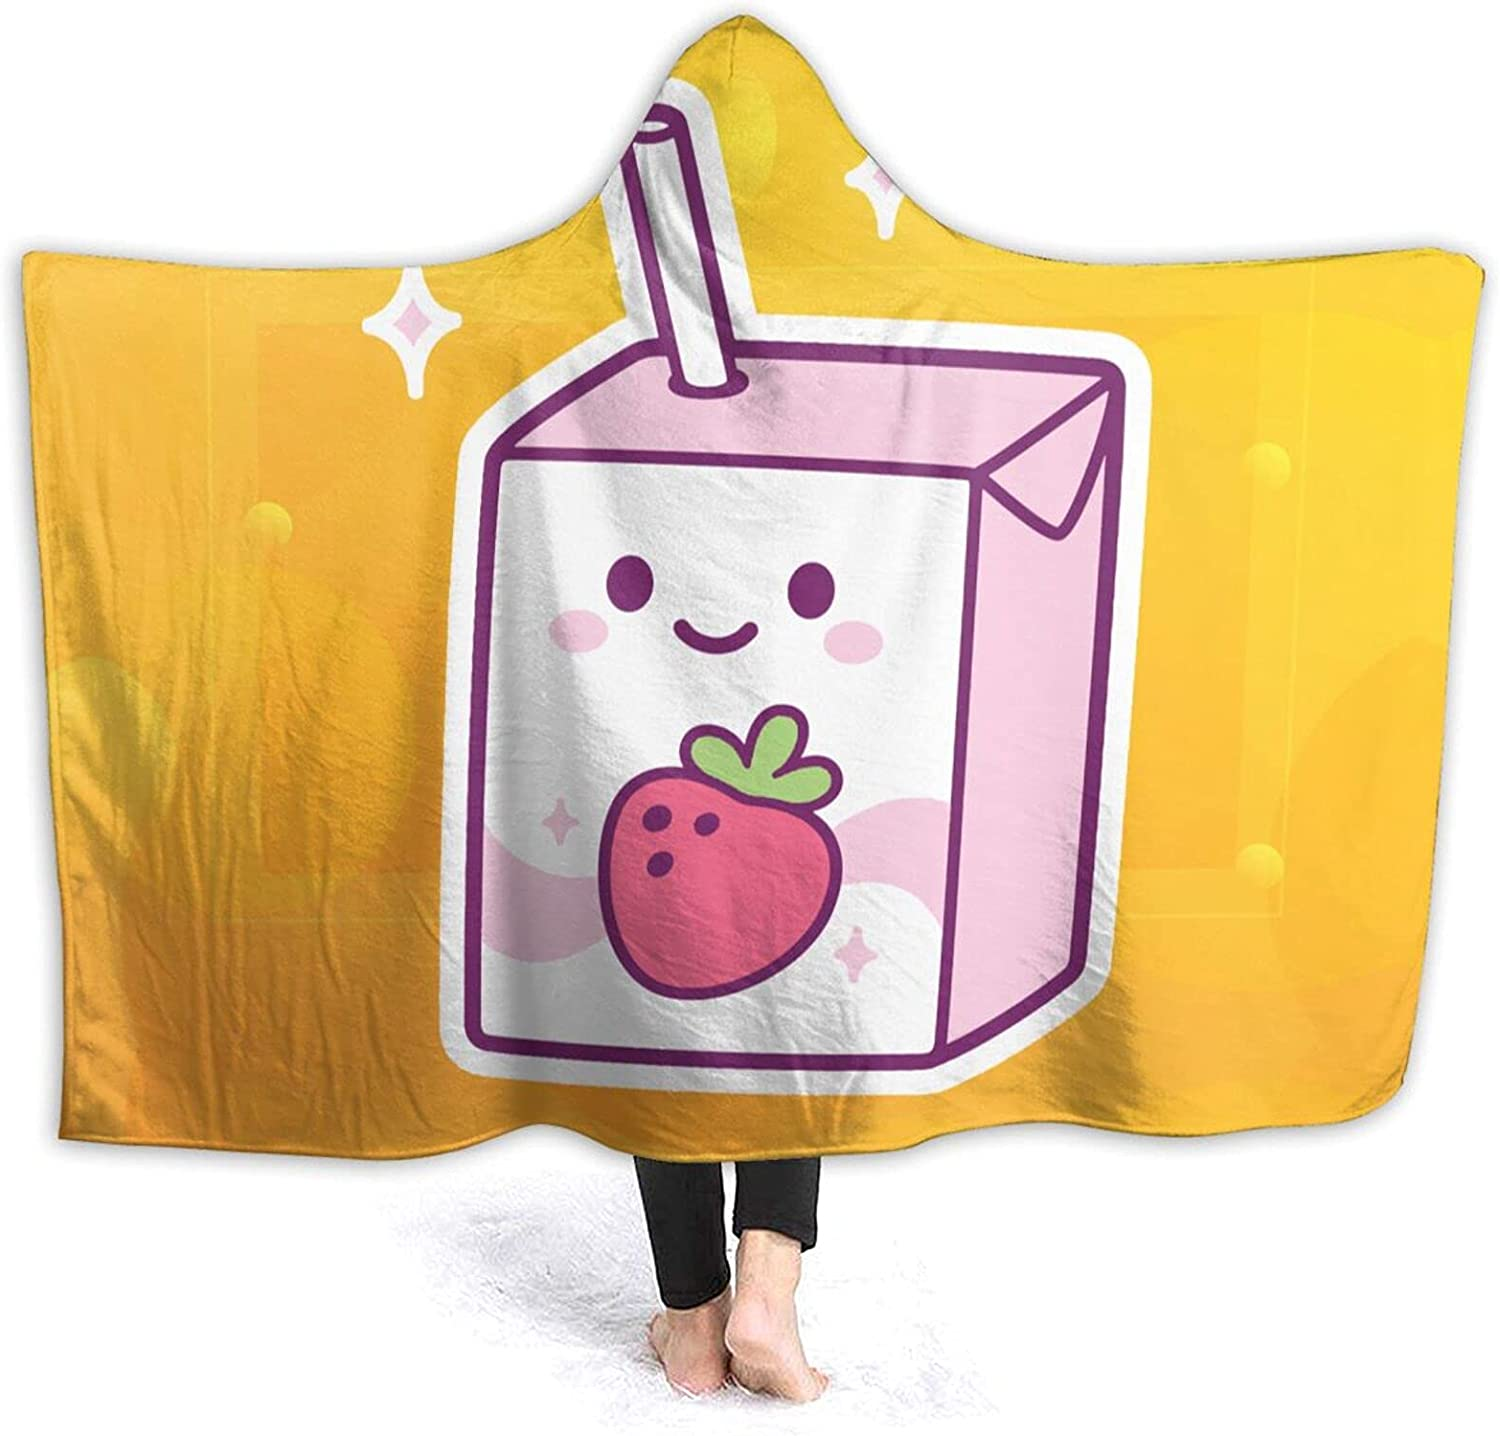 Summer New Strawberry Milk High material Printing Super Hooded Challenge the lowest price of Japan Blanket Cartoon